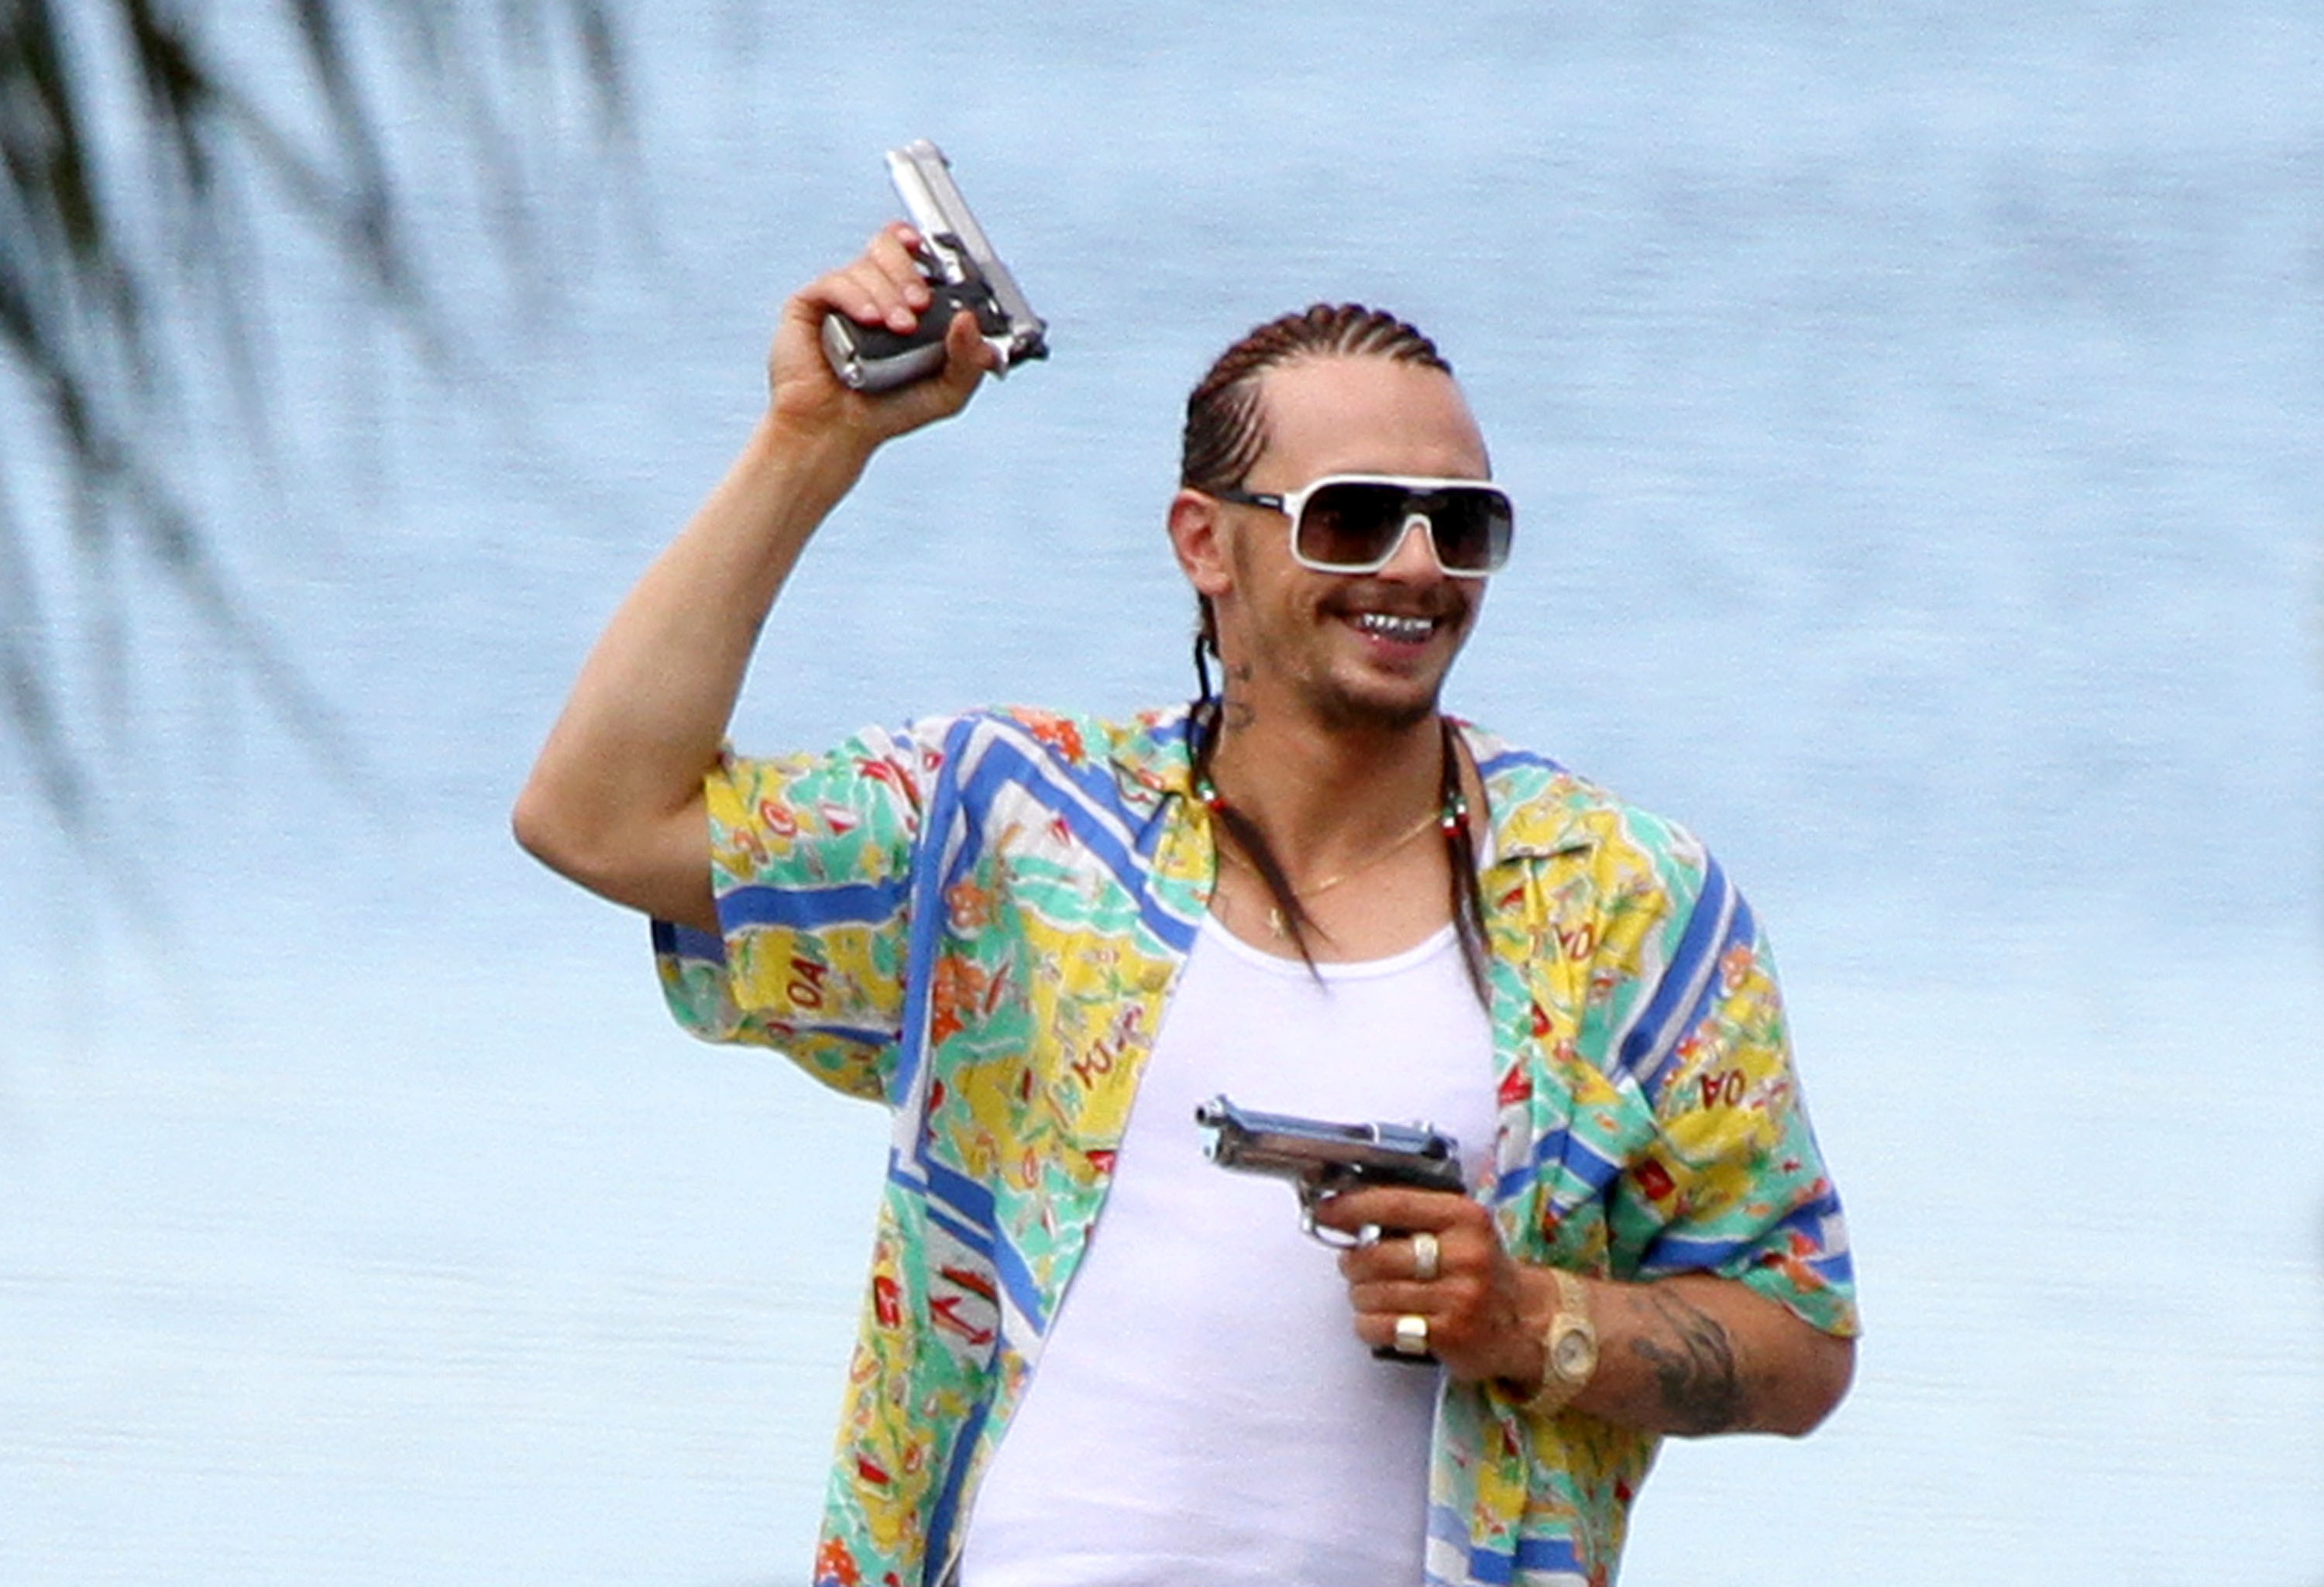 The Drew Reviews: MOVIE REVIEW: SPRING BREAKERS - Come for